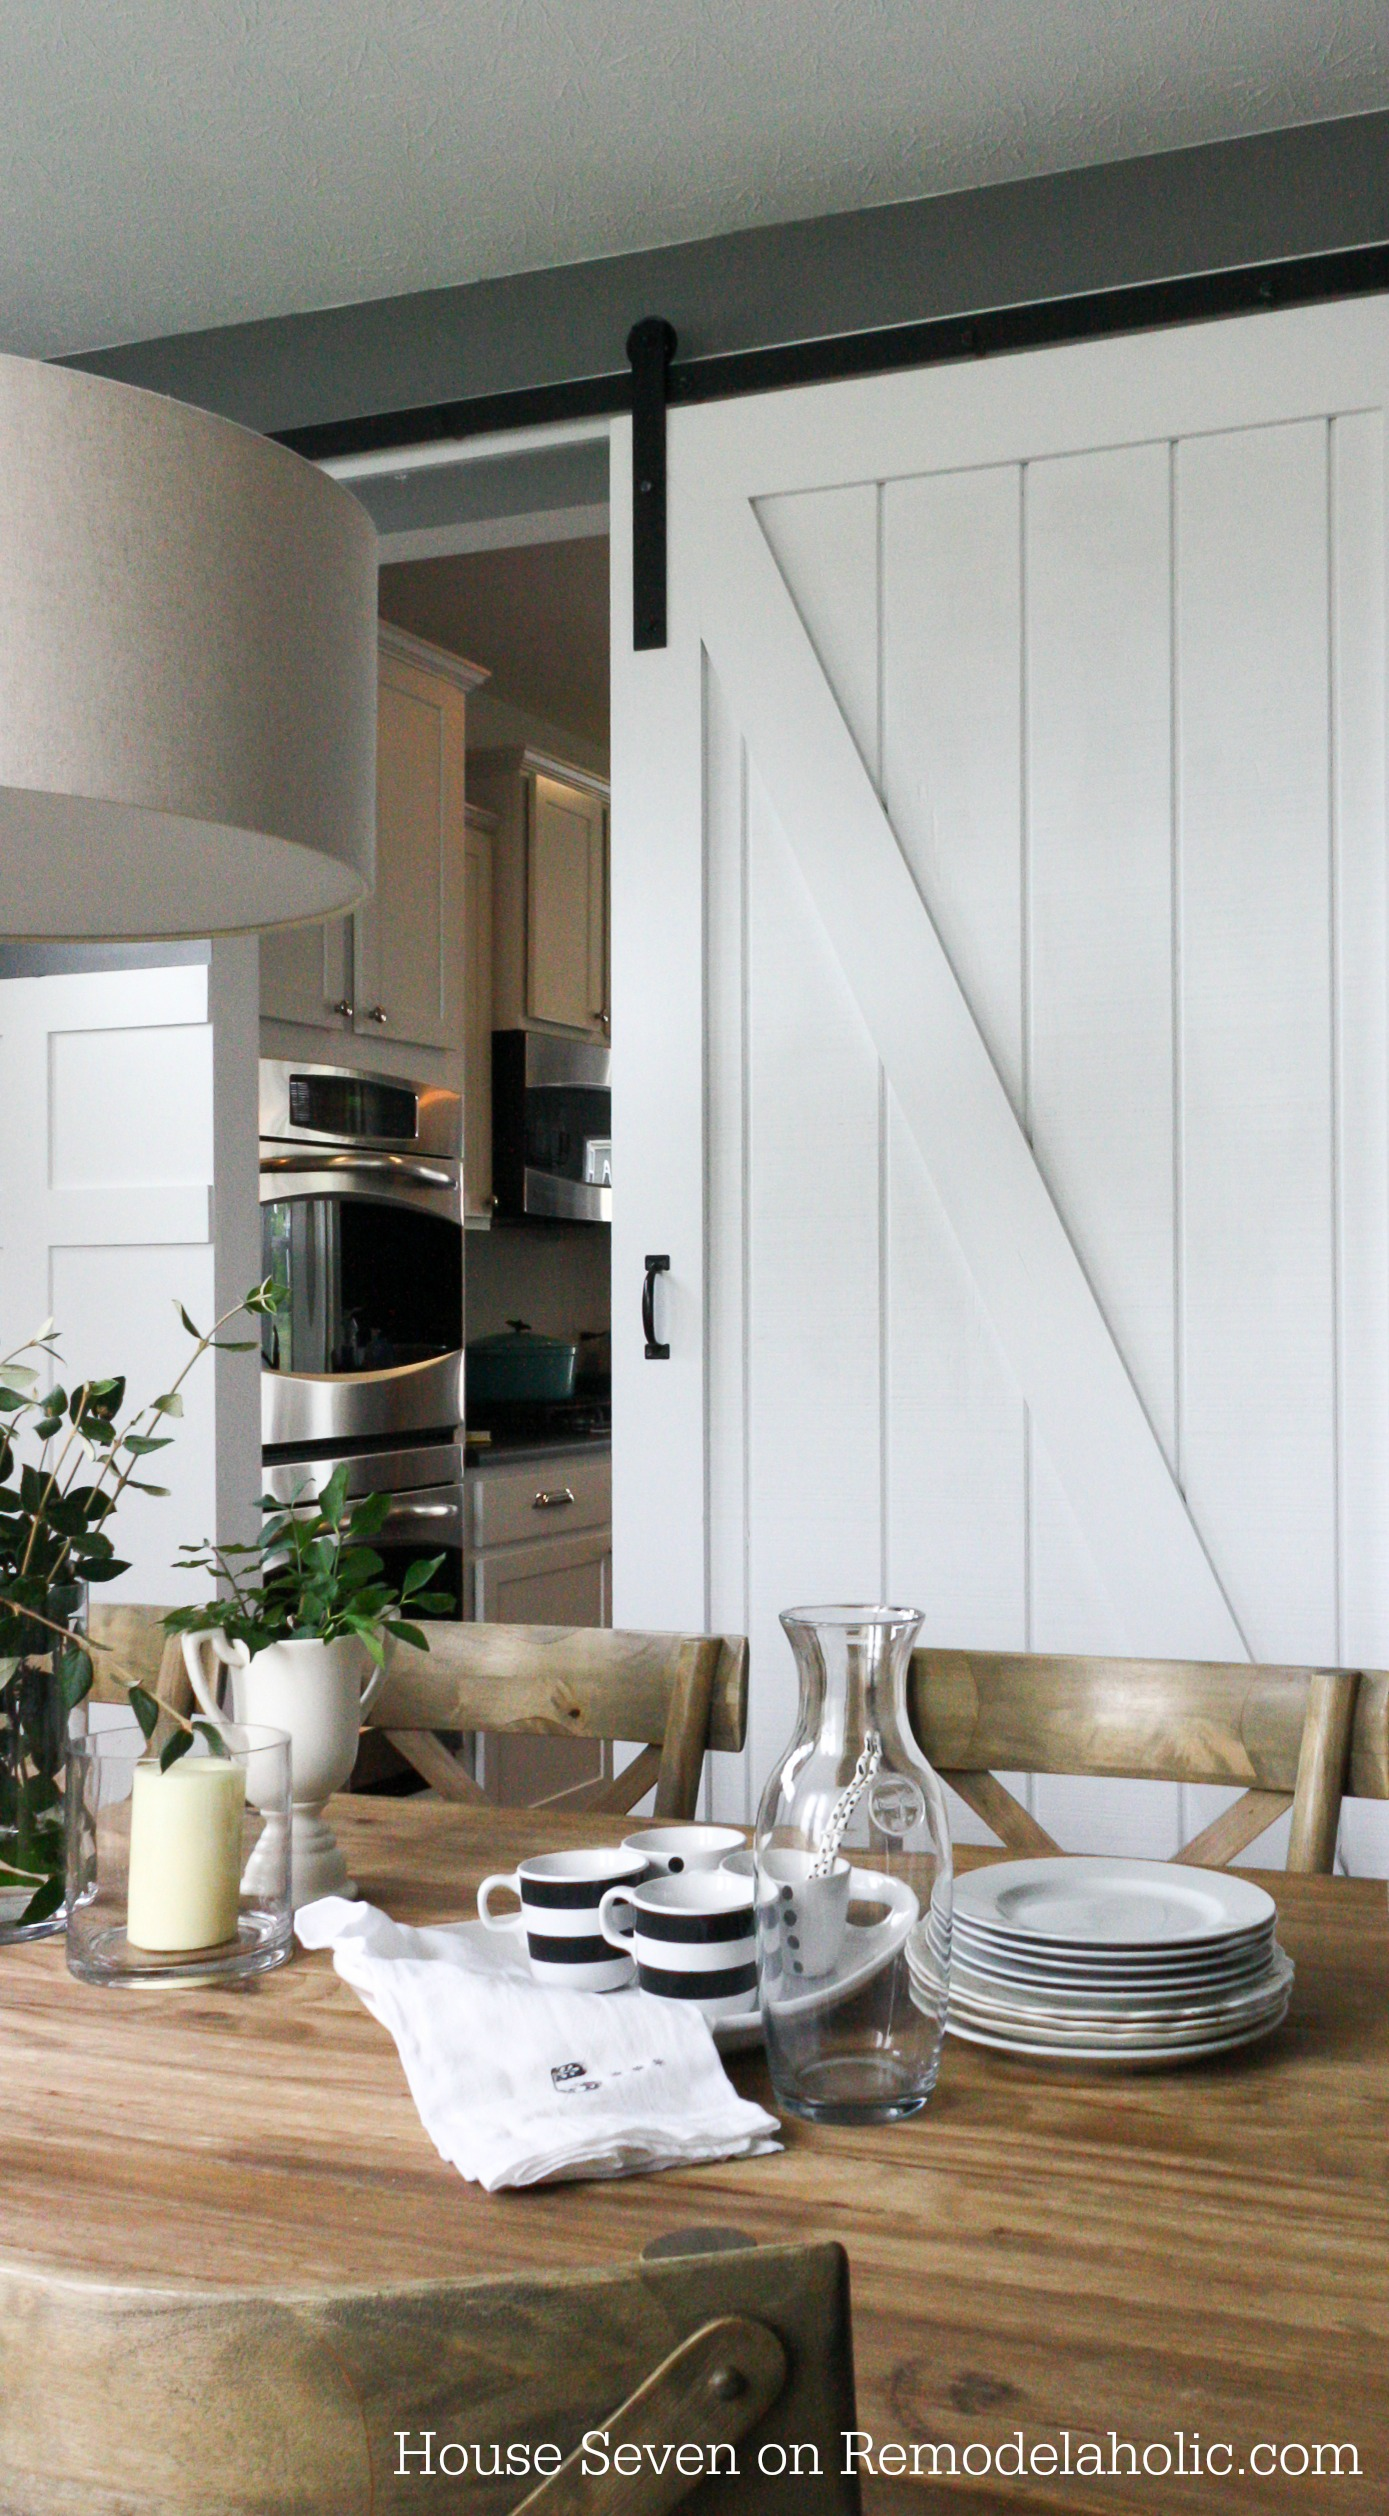 Free Plans And Tutorial Build A Beautiful Sliding Barn Door With Great Detail Using Siding